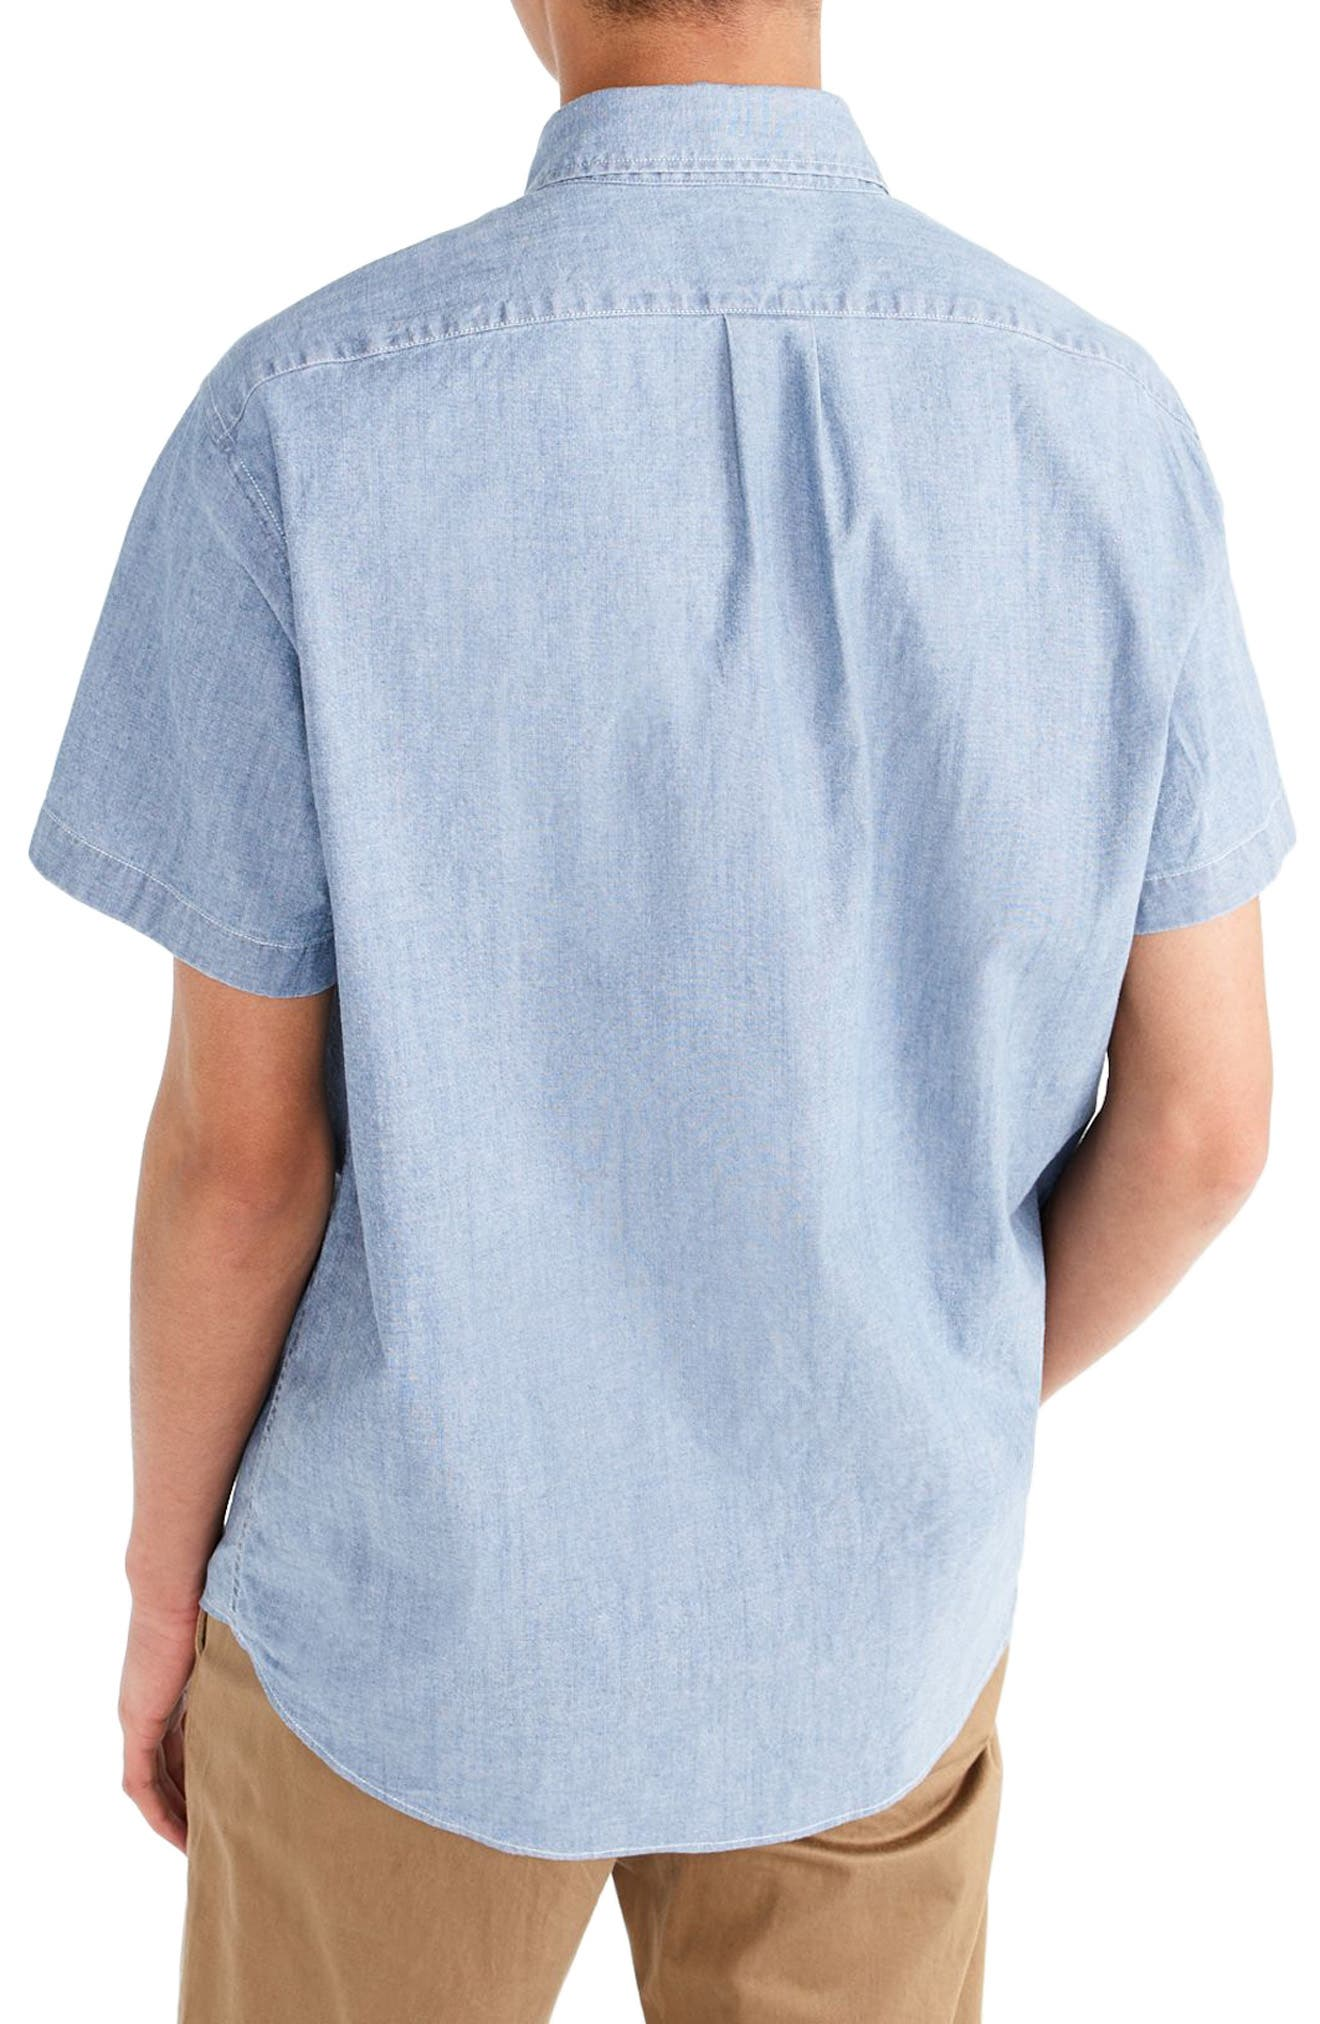 J.Crew Short Sleeve Stretch Chambray Popover Shirt,                             Alternate thumbnail 2, color,                             Indigo